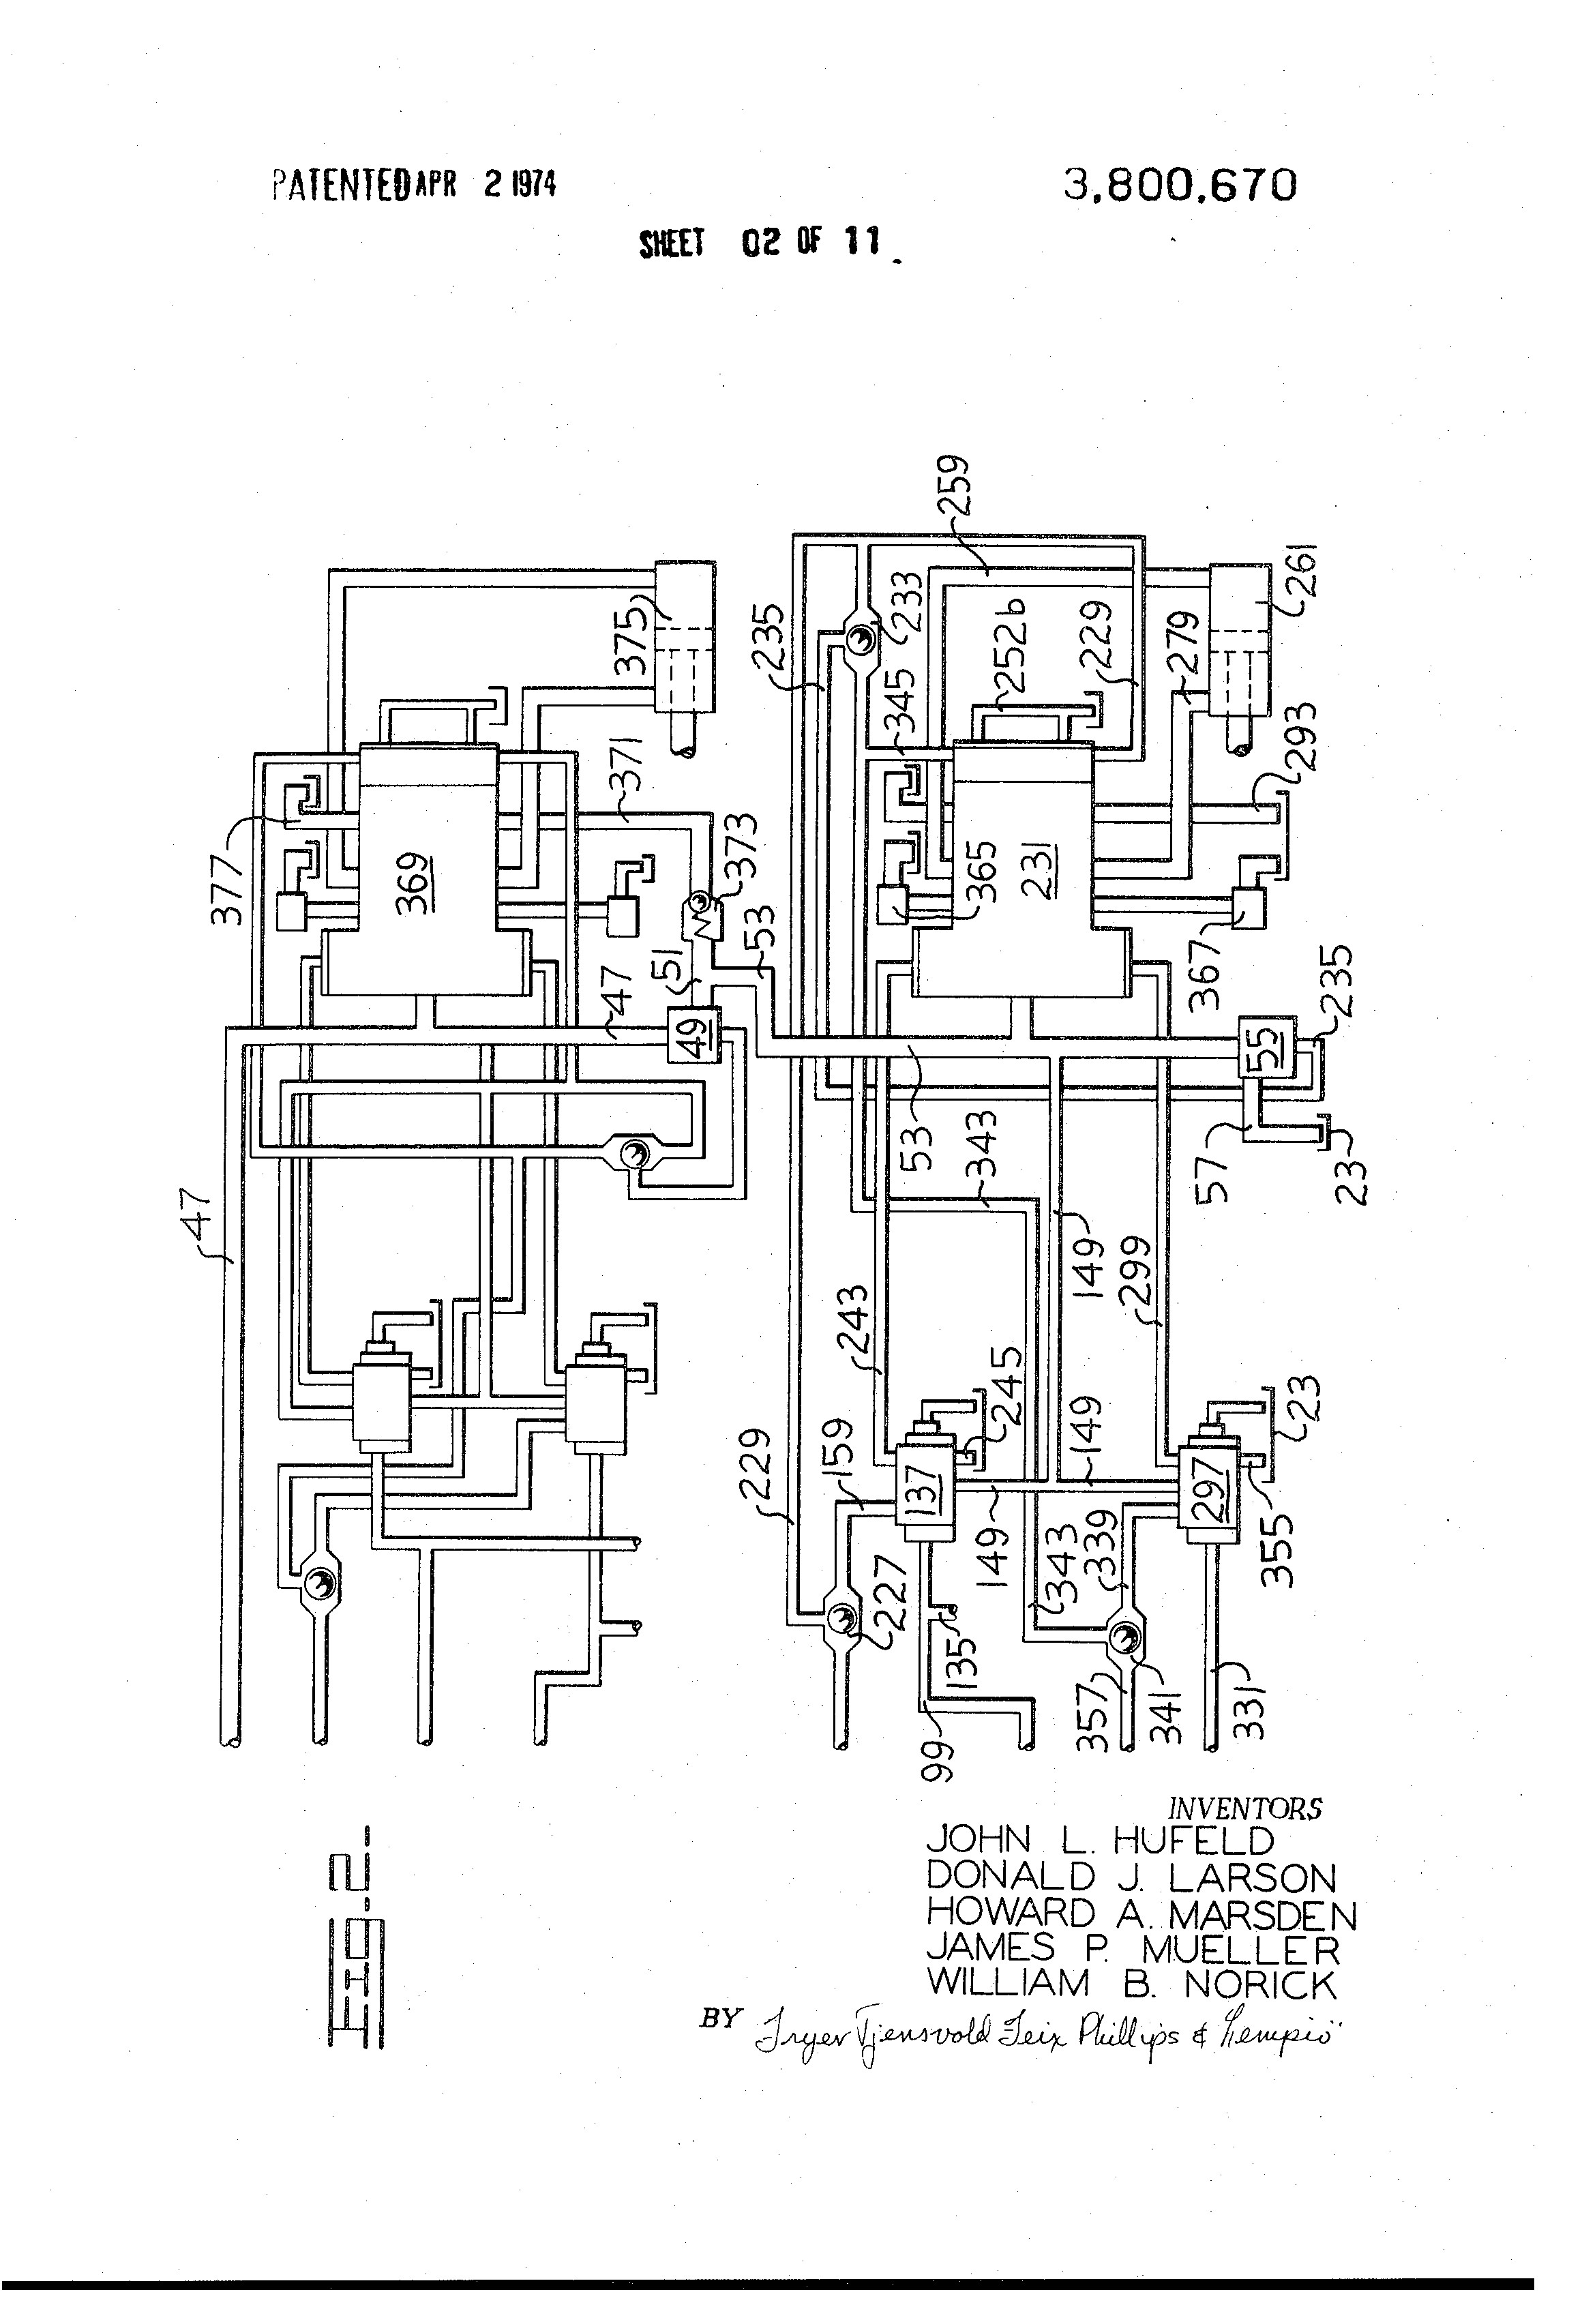 Mf 165 Wiring Diagram Page 3 Wiring Diagram And Schematics Massey Ferguson  Alternator Wiring Diagram Mf 165 Wiring Diagram